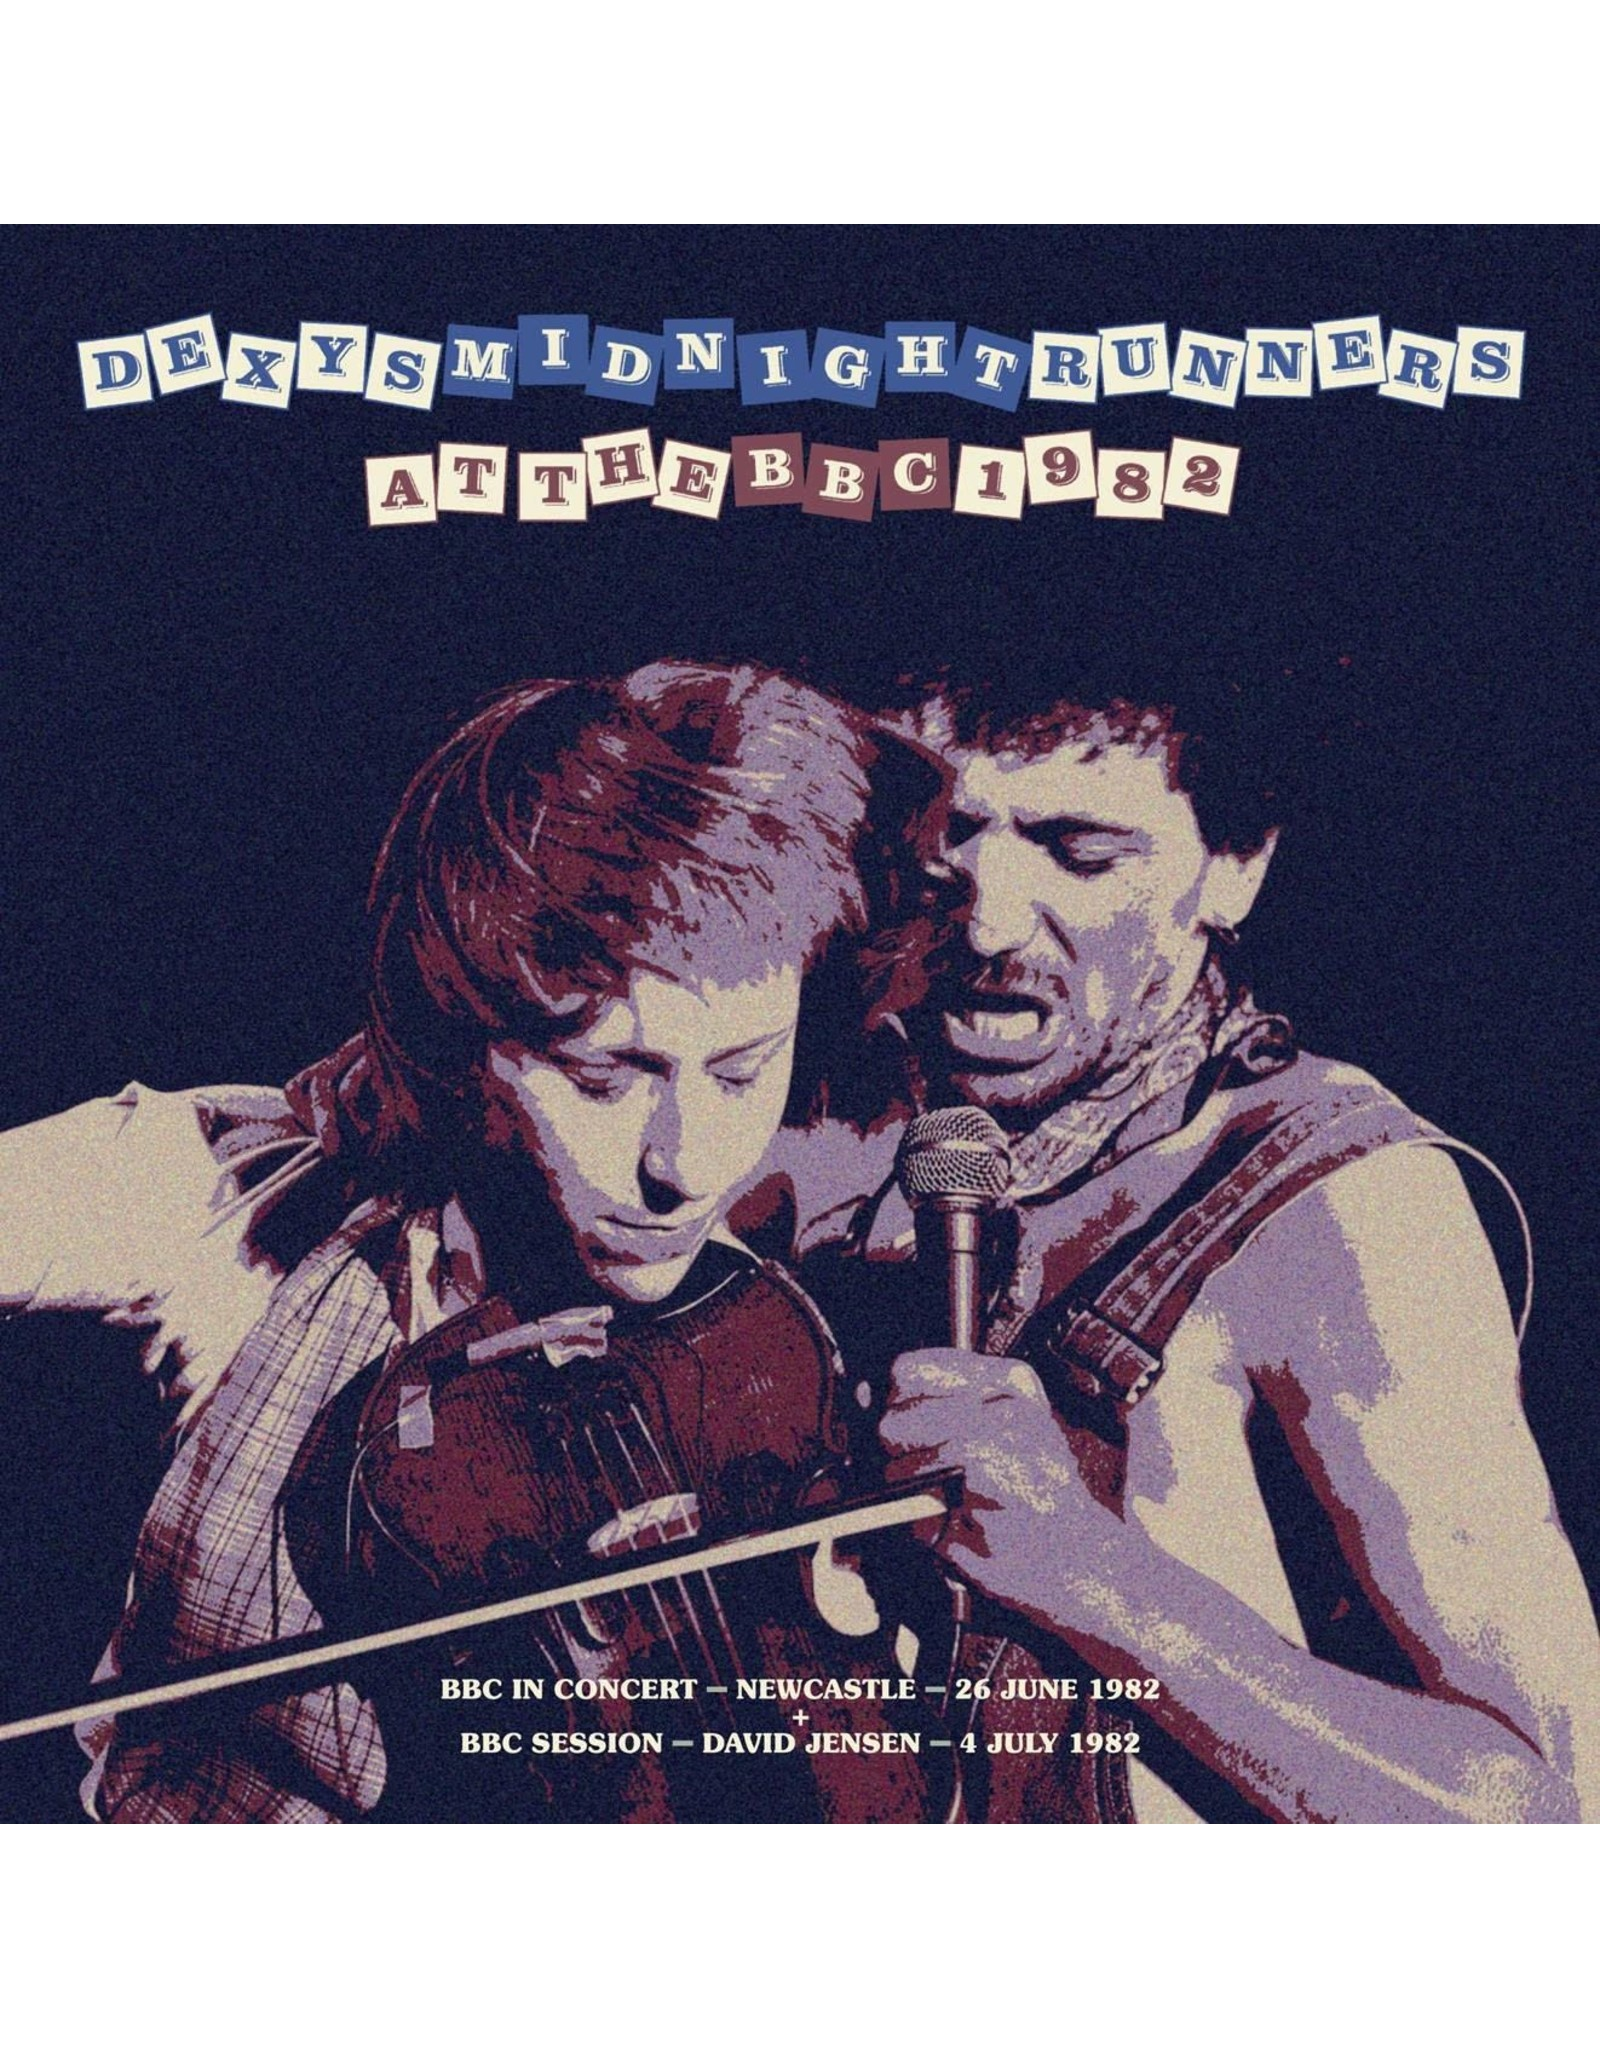 Dexy's Midnight Runners - At the BBC (2LP)